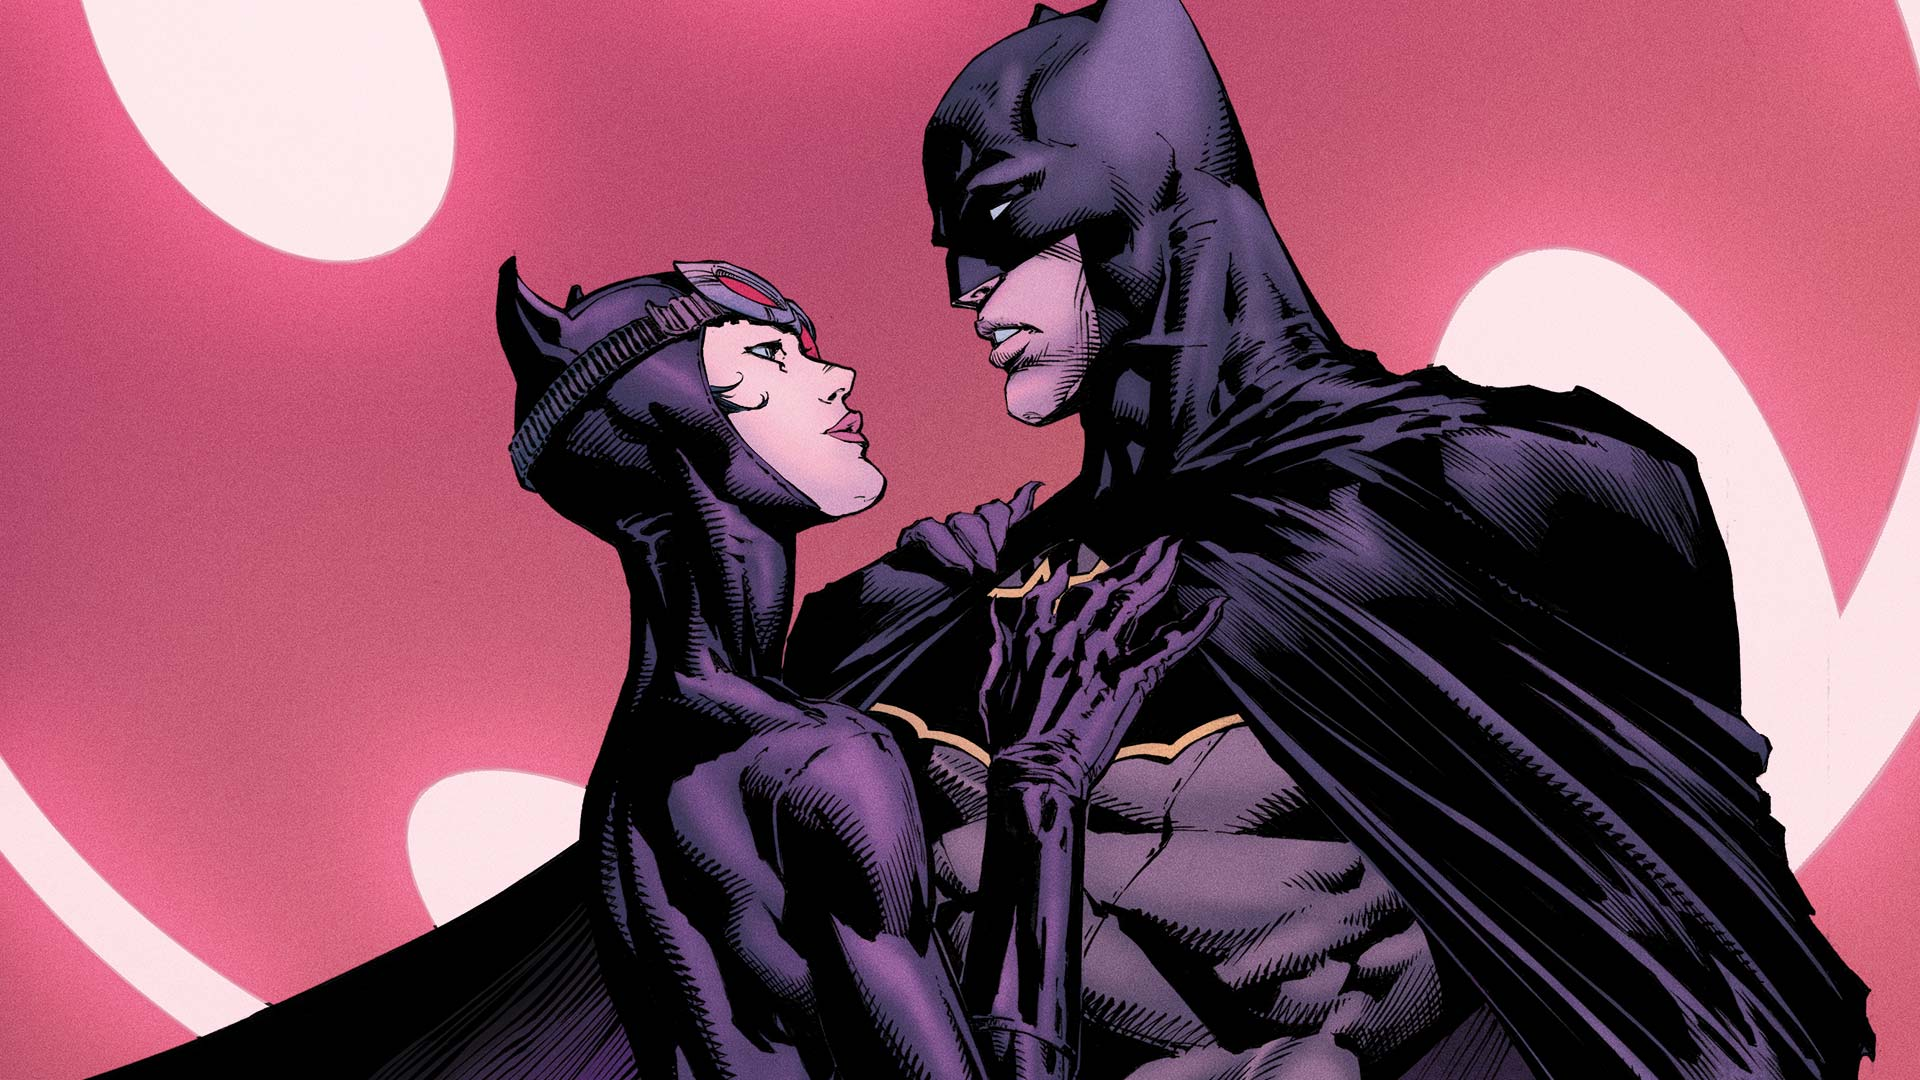 The wedding date is set: Batman and Catwoman set to marry in July's 'Batman' #50